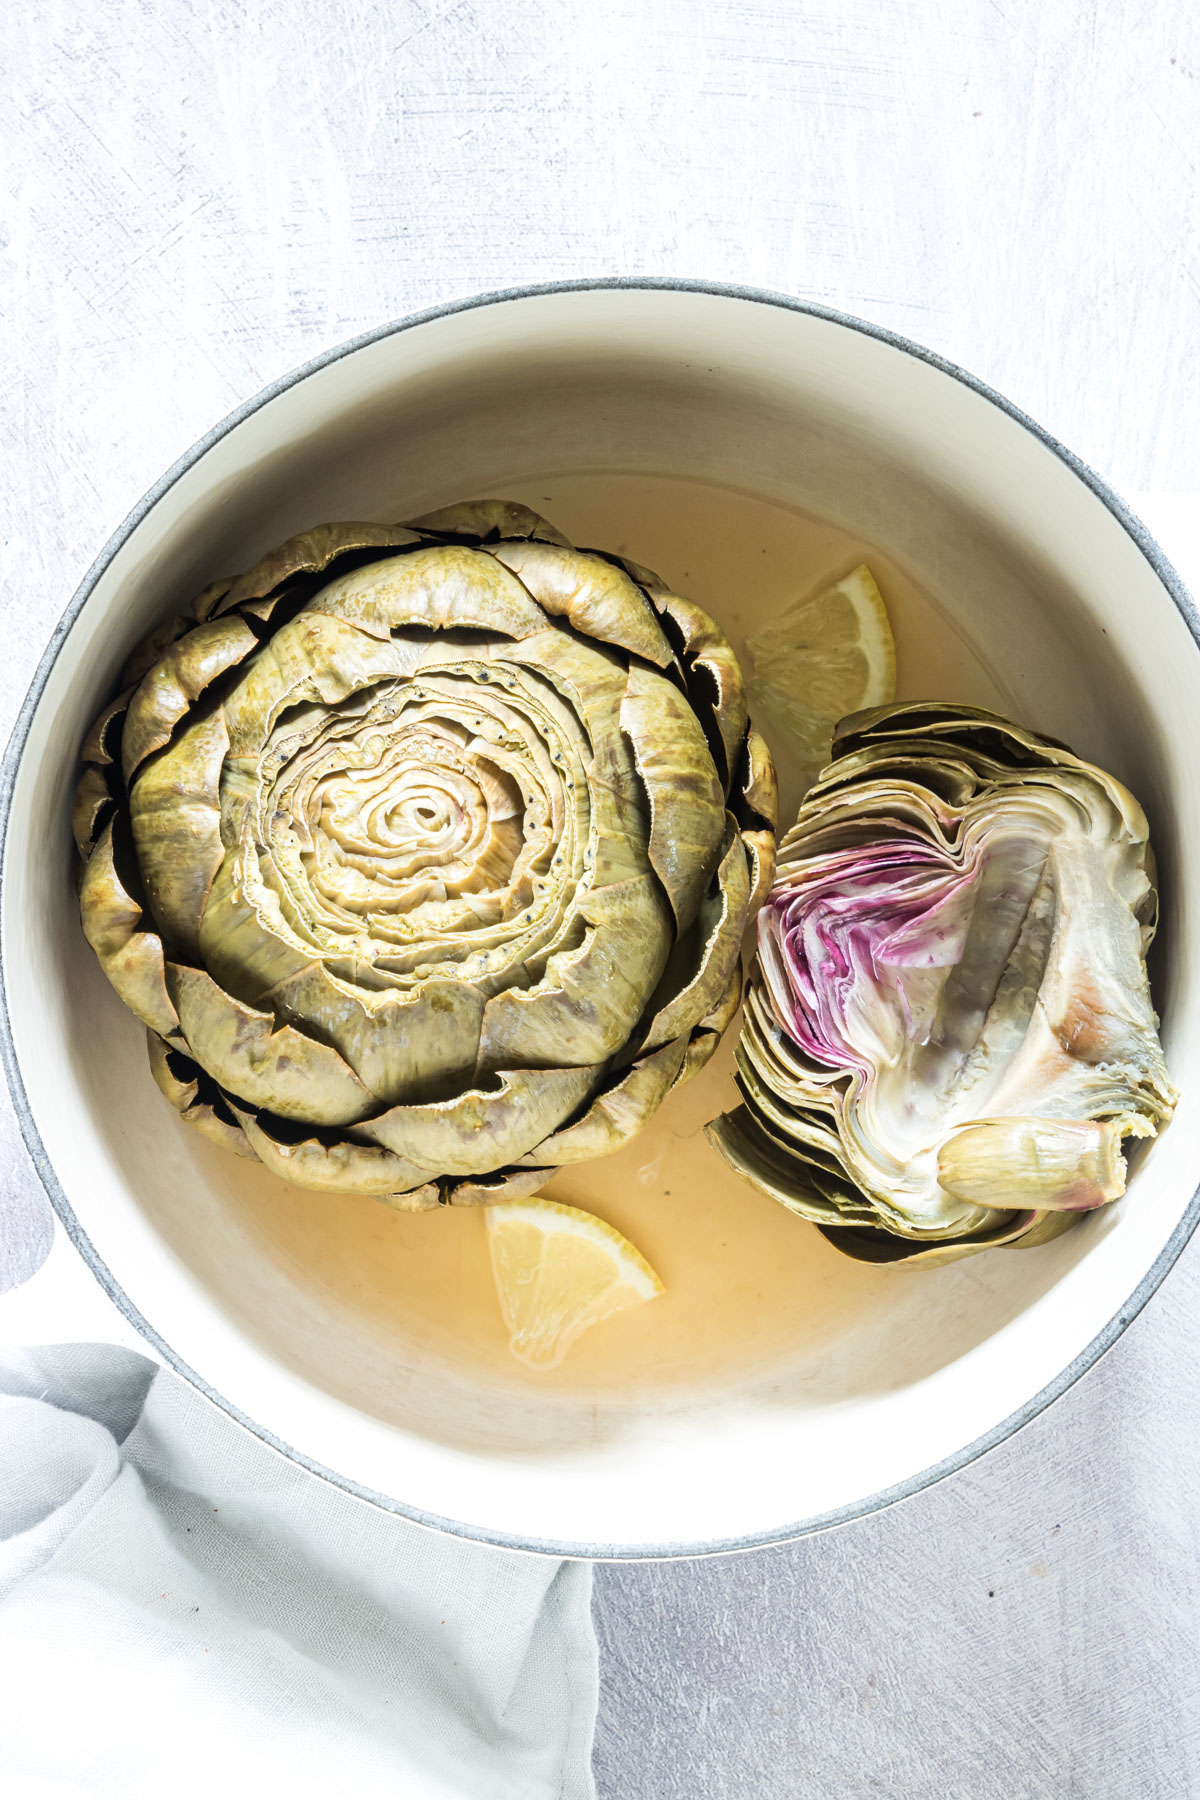 top down view of the completed how to cook artichokes recipe